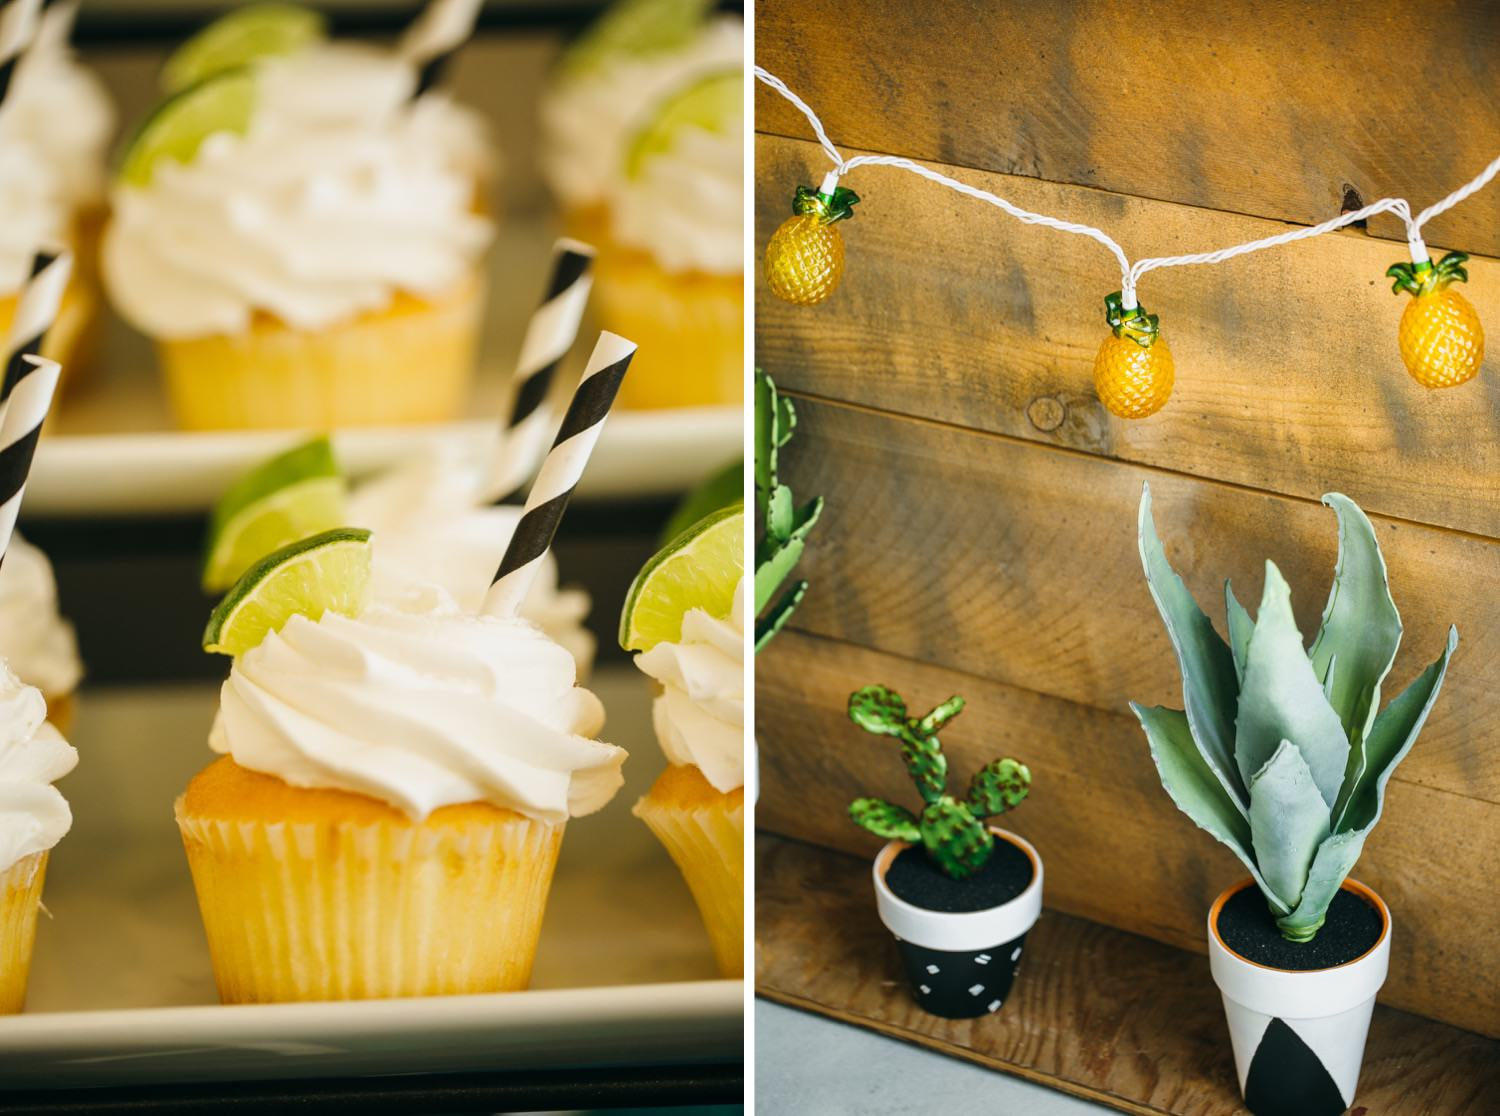 Baby Shower Inspiration - https://brittneyhannonphotography.com